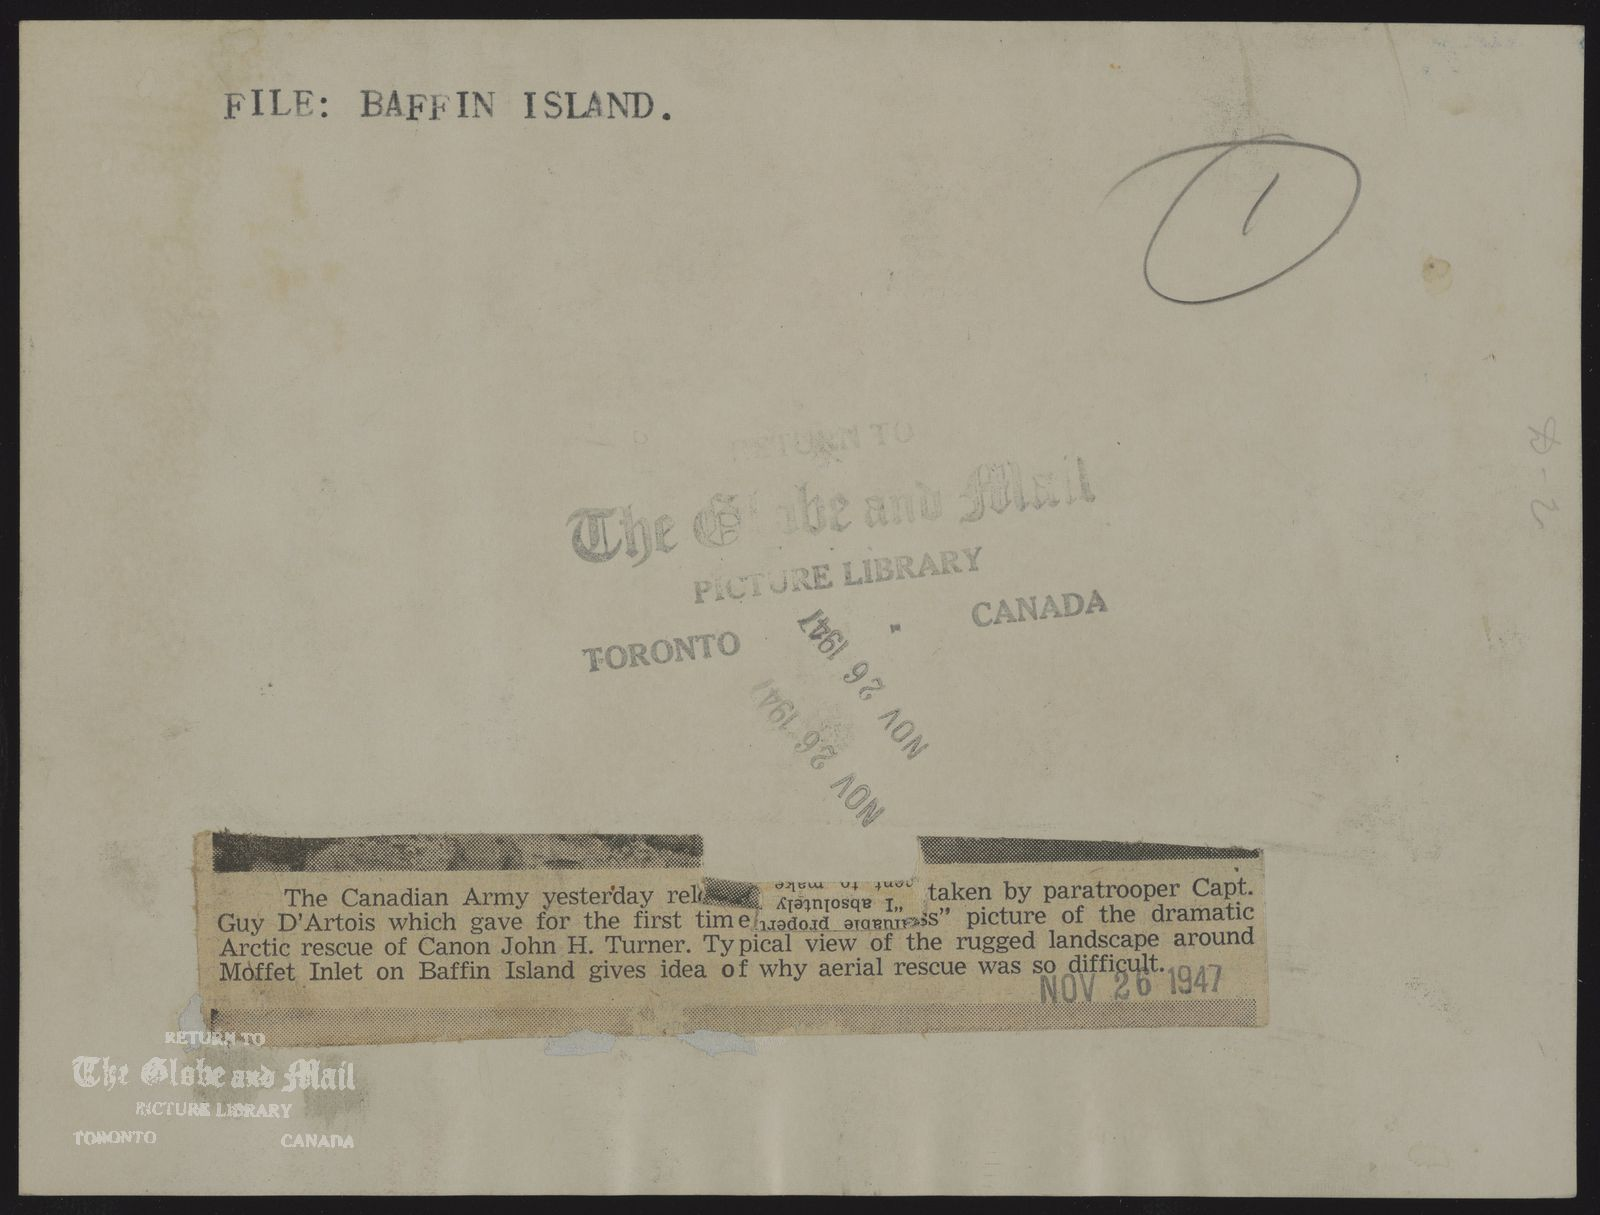 The notes written and typed on the back of this photograph, from the time it was printed, are as follows: BAFFIN ISLAND The Canadian Army yesterday released photos taken by paratrooper Capt. Guy D'Artois which gave for the first time an